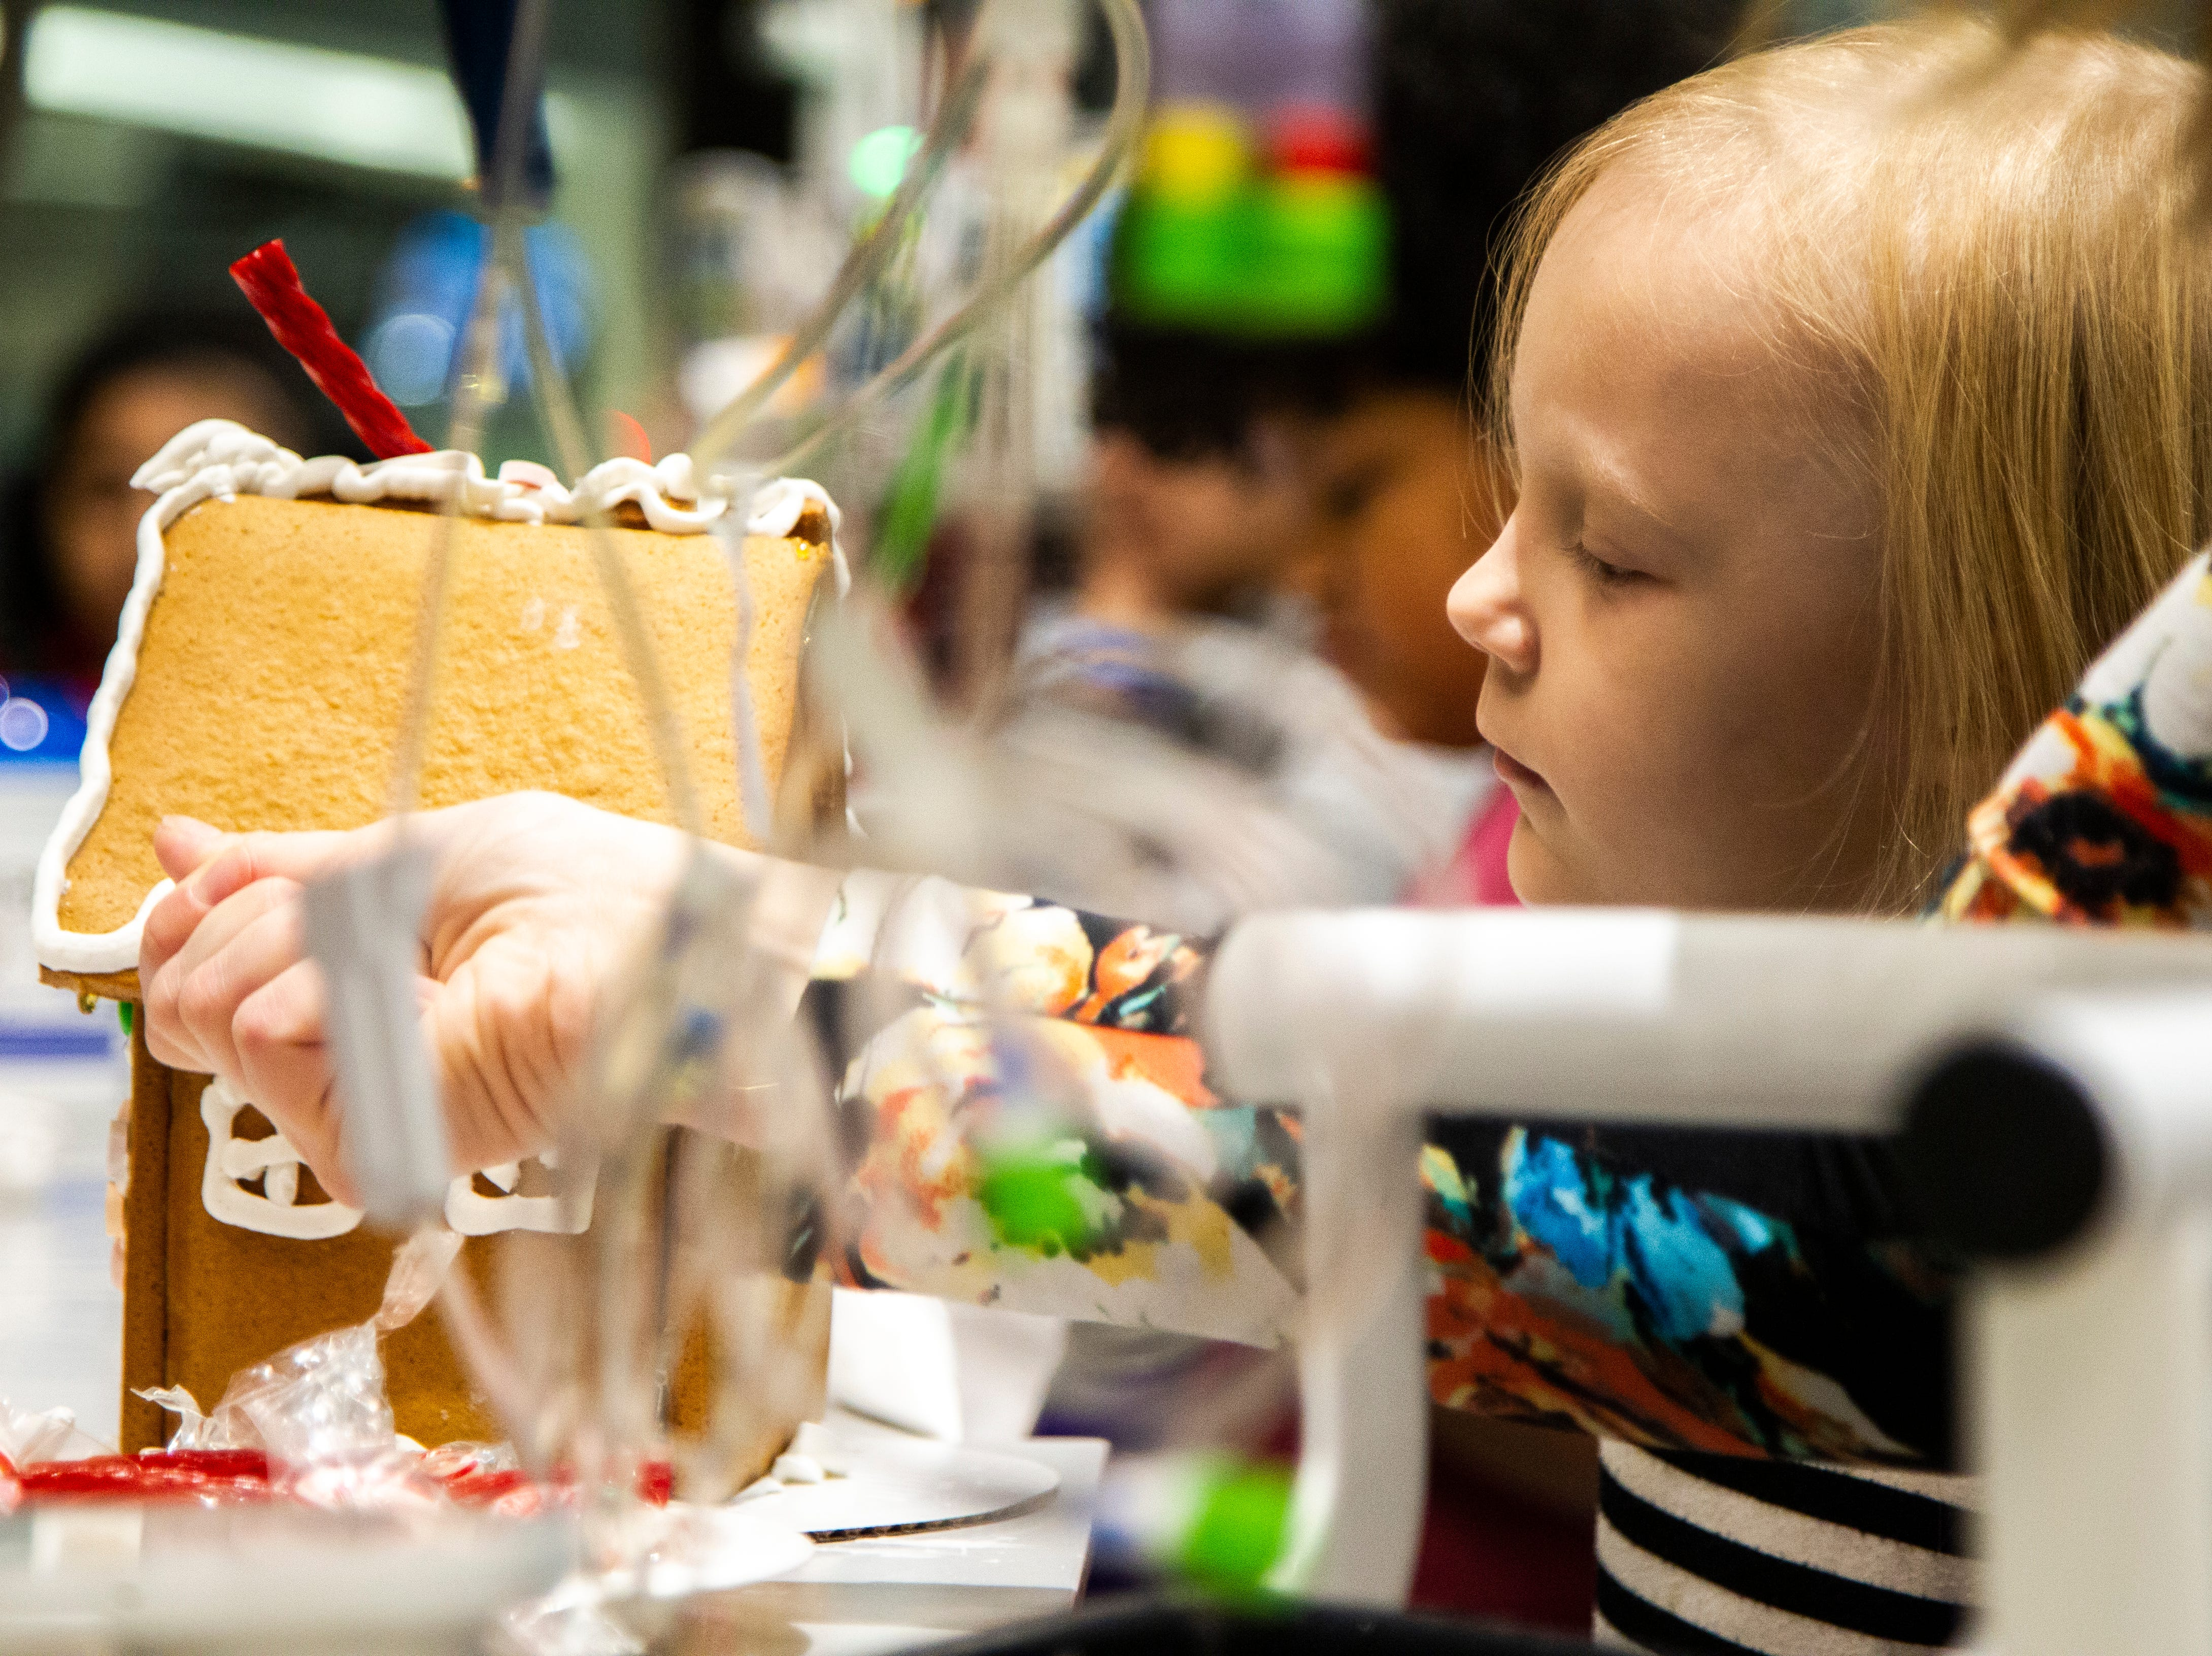 Shelby Kruse helps her daughter Ava while they decorate a gingerbread house together at an event on Tuesday, Dec. 18, 2018, at the Stead Family Children's Hospital in Iowa City.